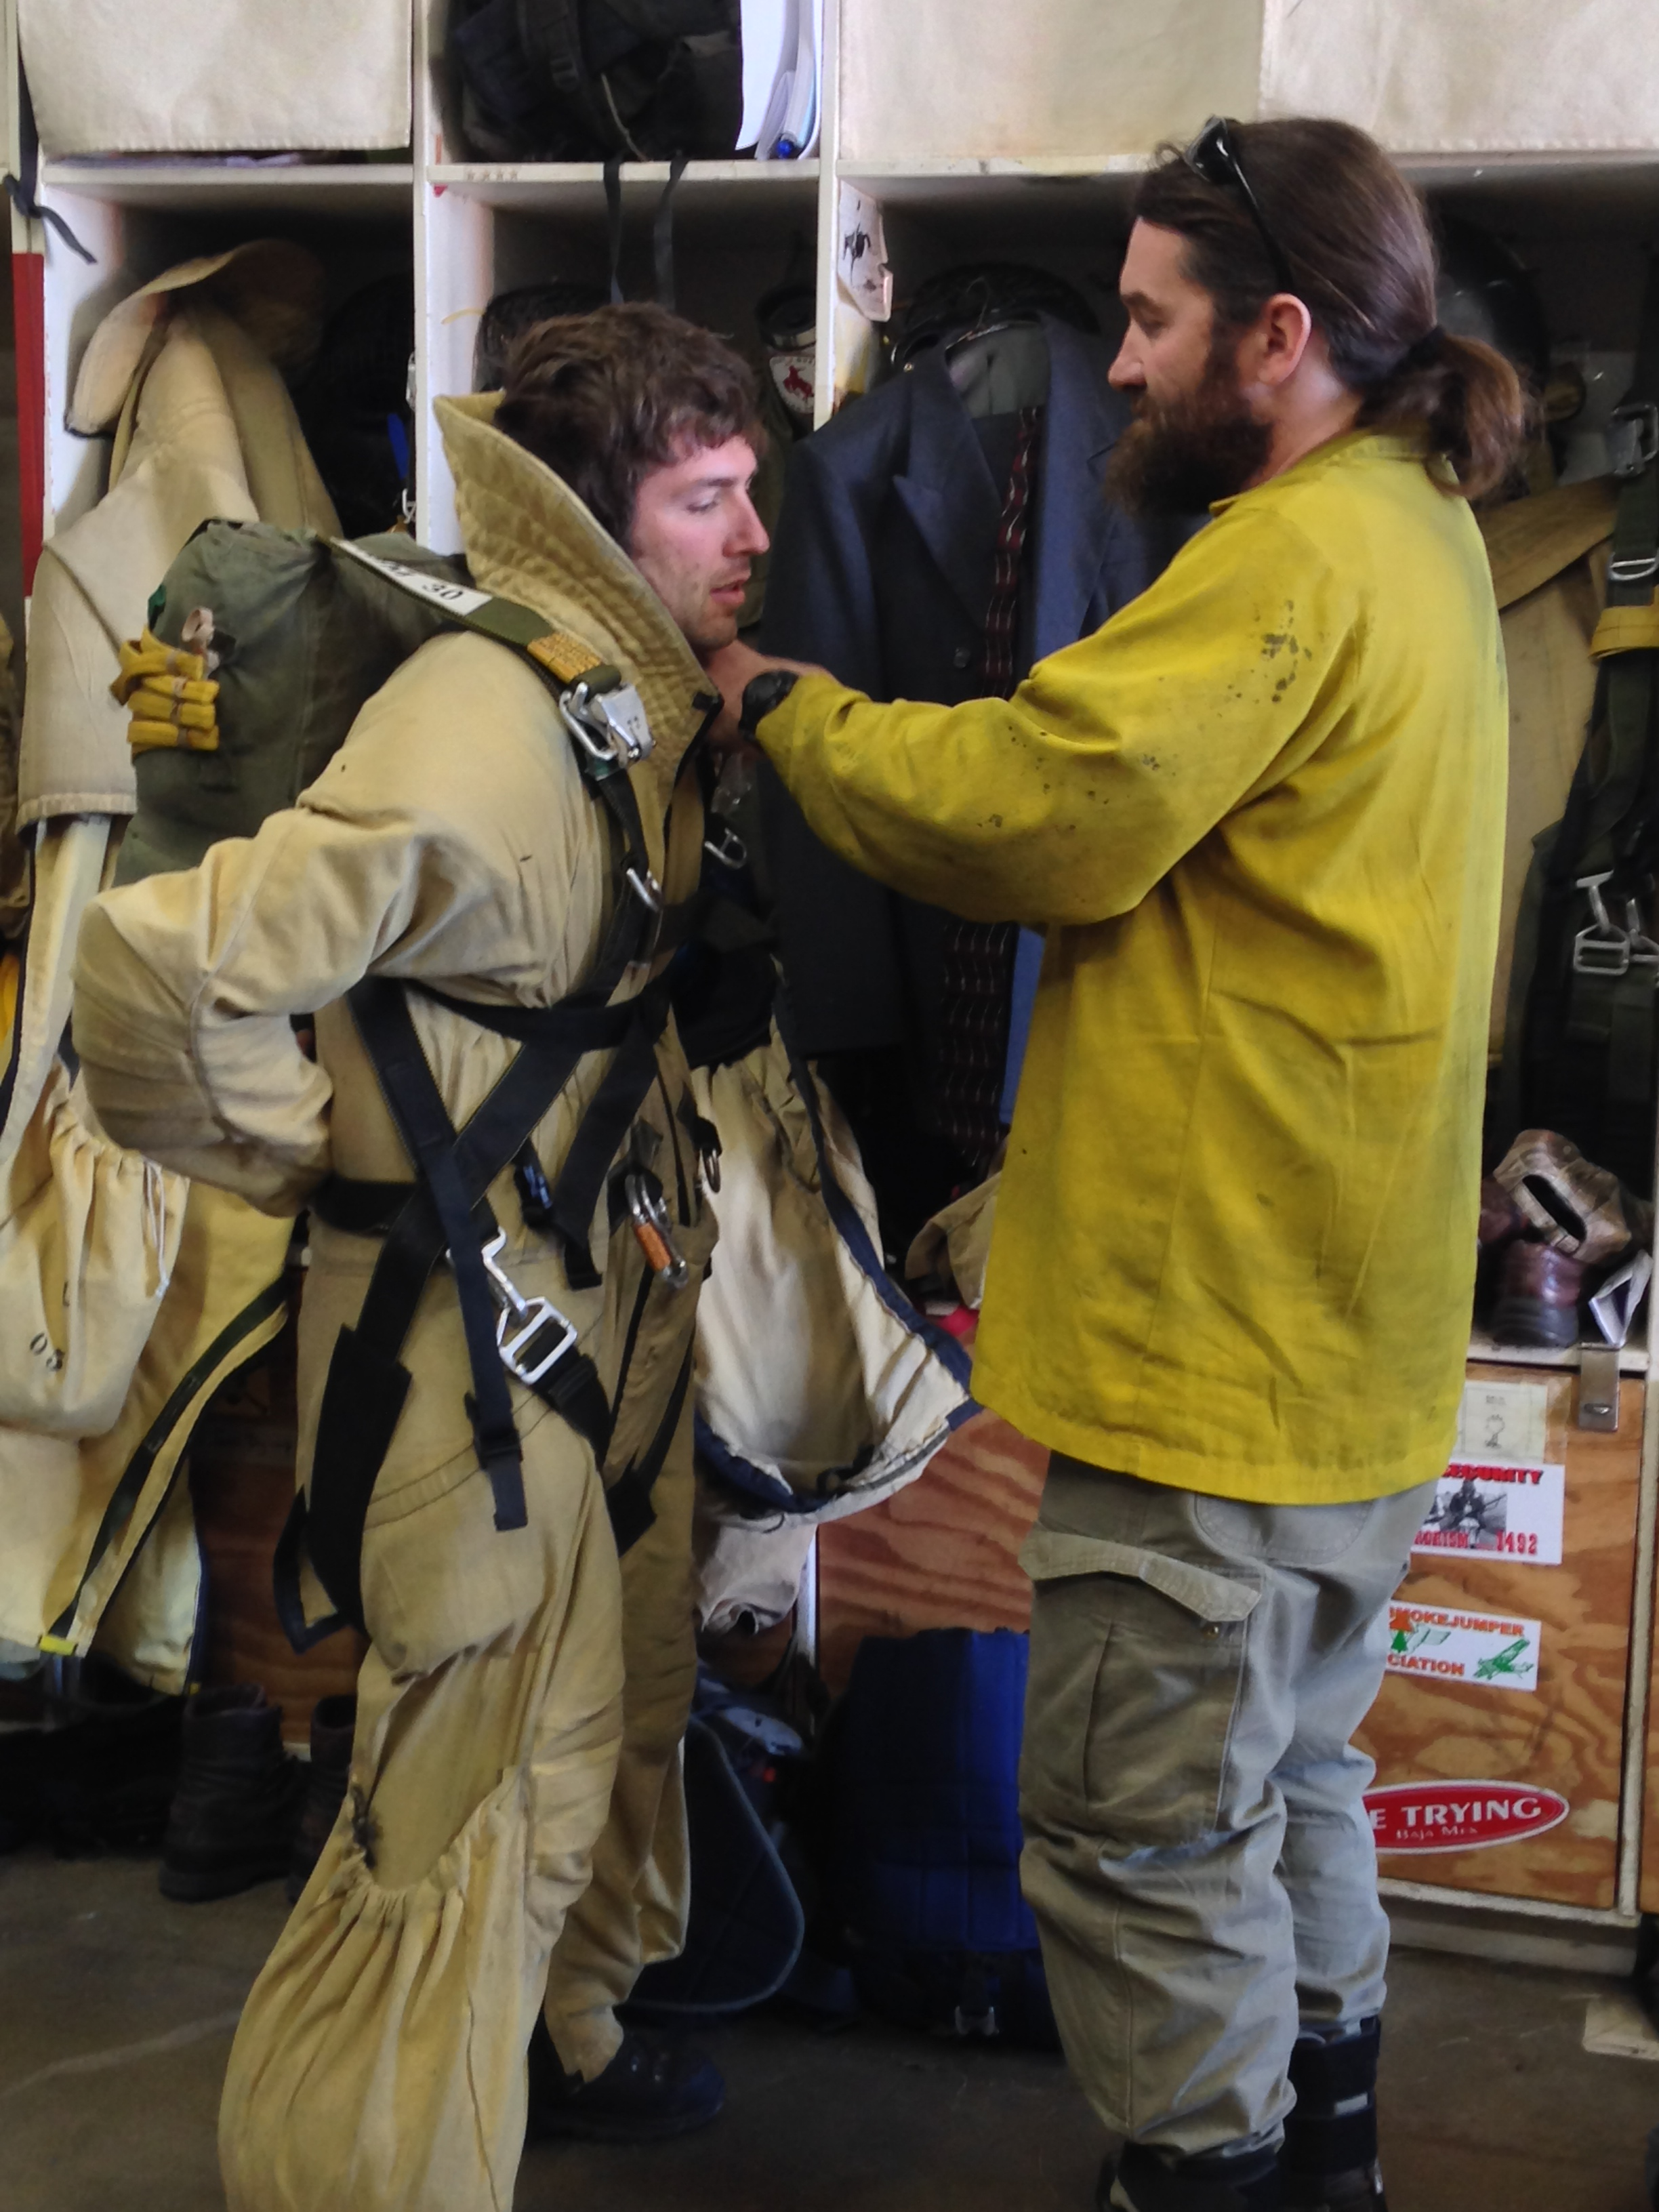 Smokejumper suiting up